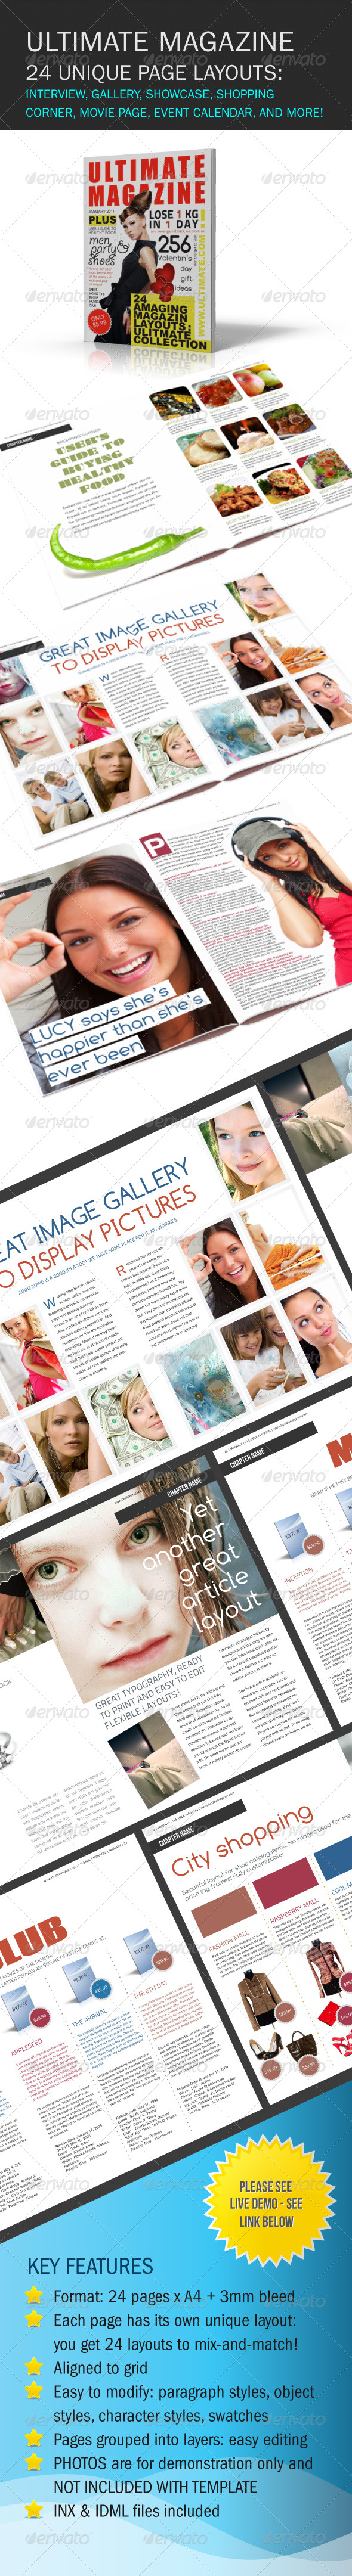 Ultimate Magazine 24 layouts